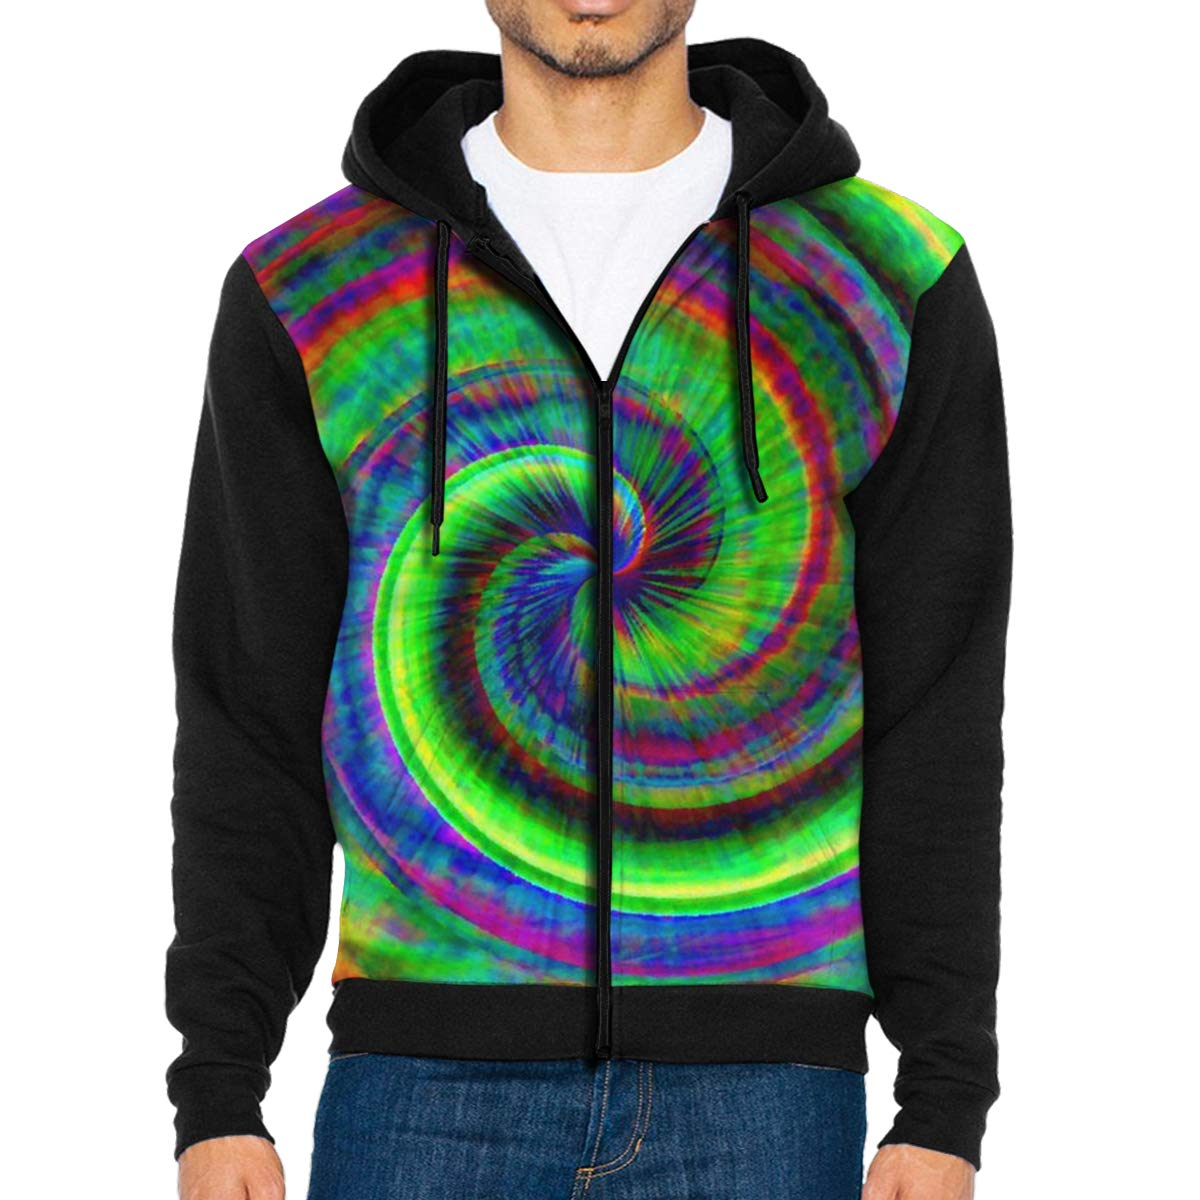 MHBGMYES Tie Dye Lightweight Mans Jacket with Hood Long Sleeved Zippered Outwear